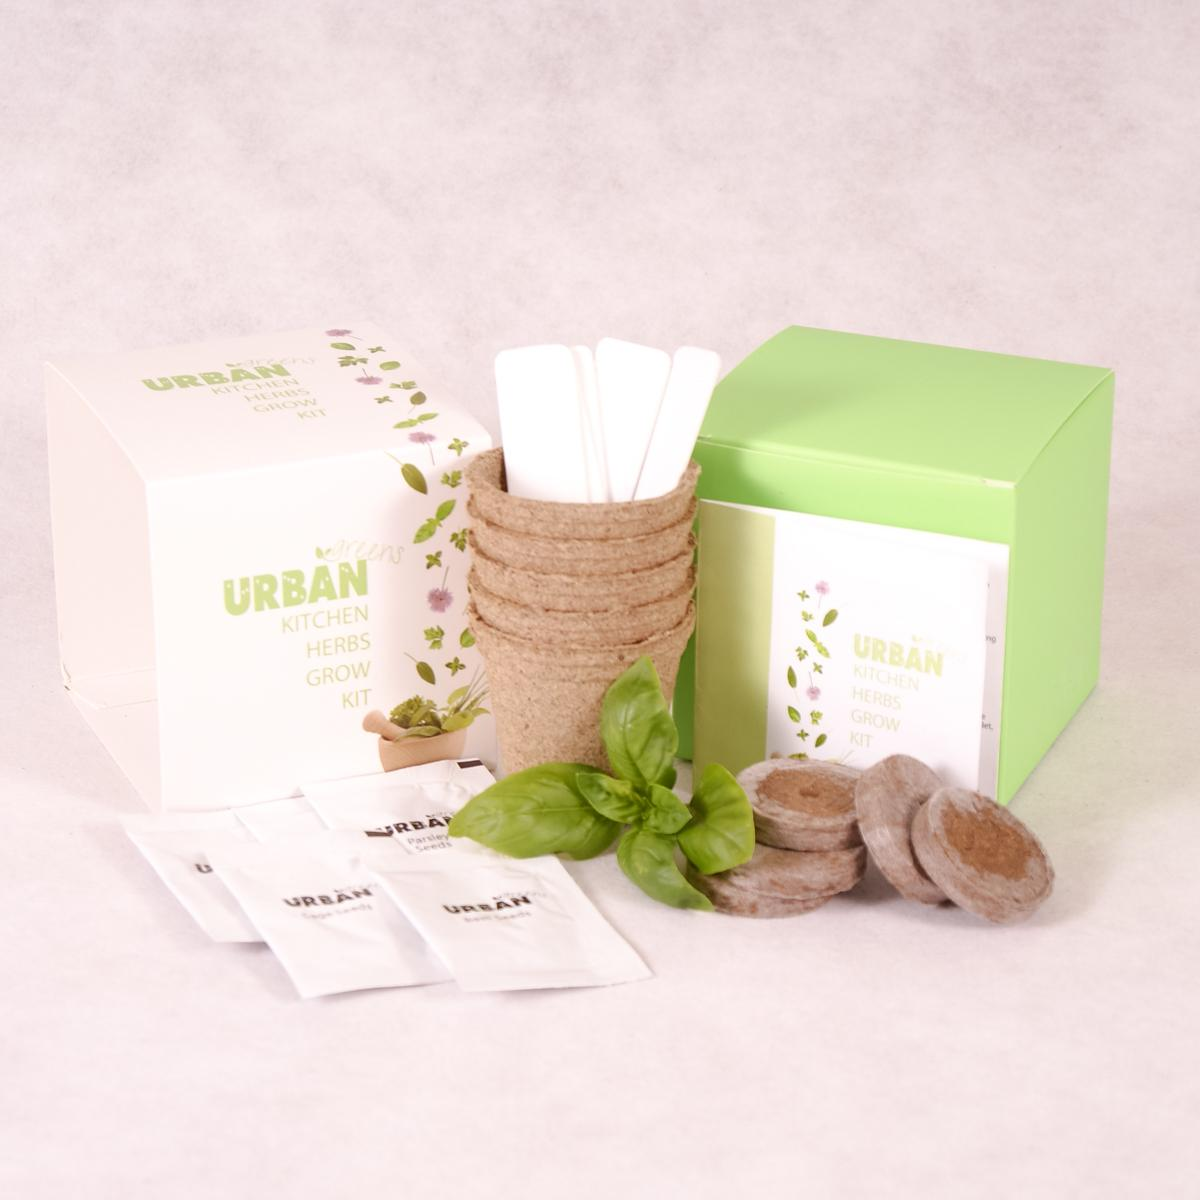 Kitchen Herbs Growing Kit | Urban Greens - Growing Kit - Throw Some Seeds - Australian gardening gifts and eco products online!